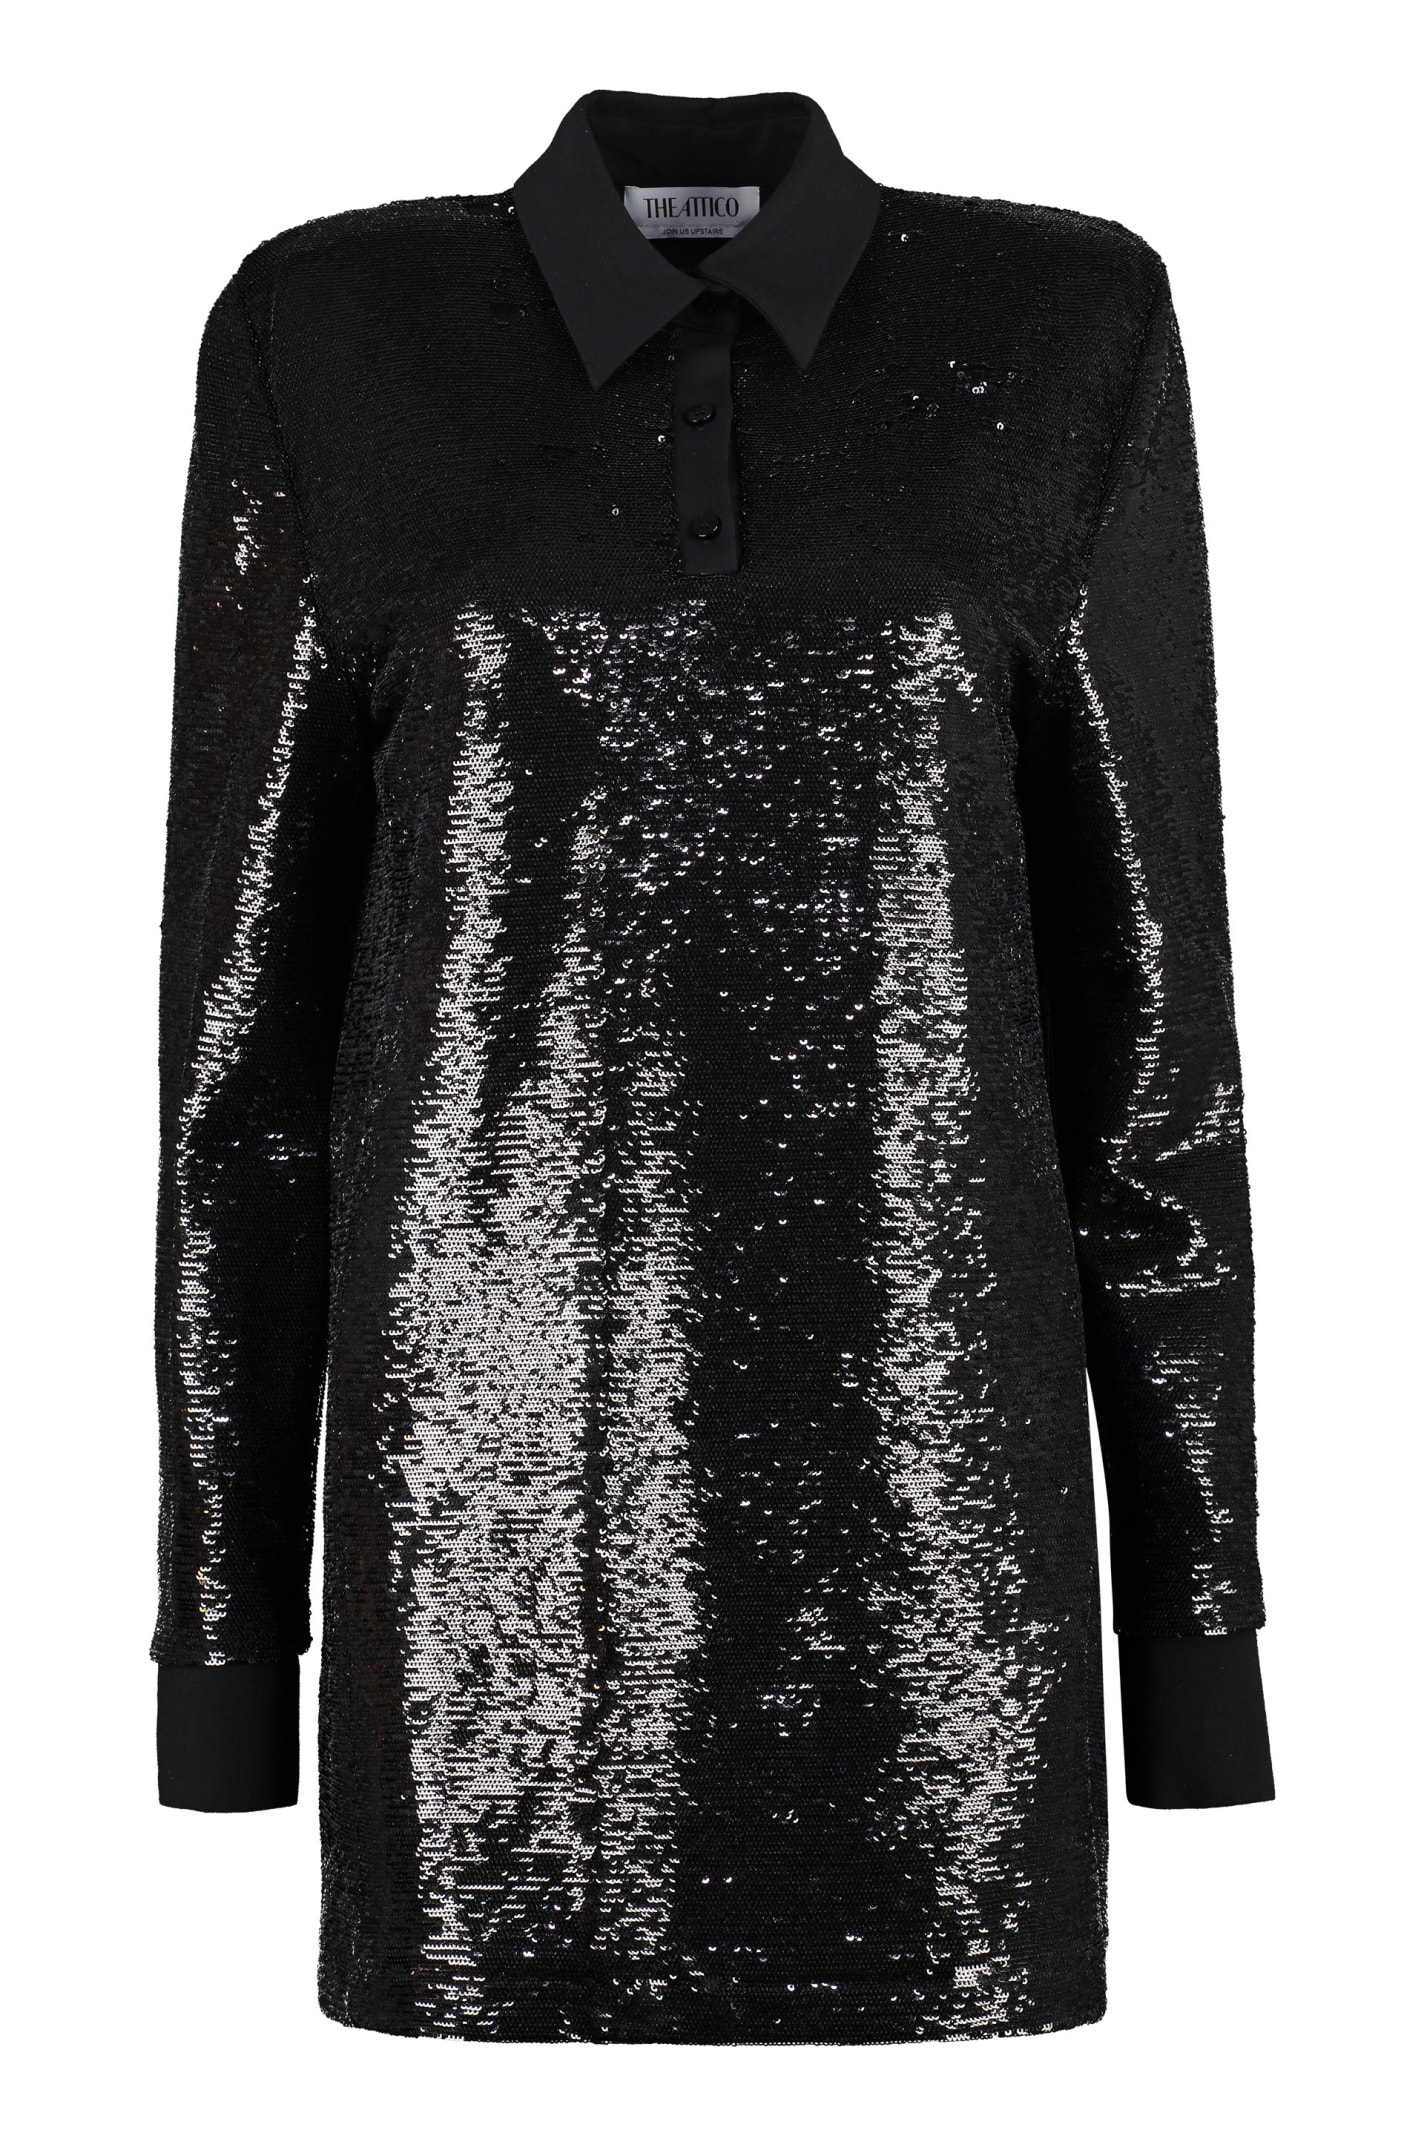 Buy The Attico Sequined Mini-dress online, shop The Attico with free shipping